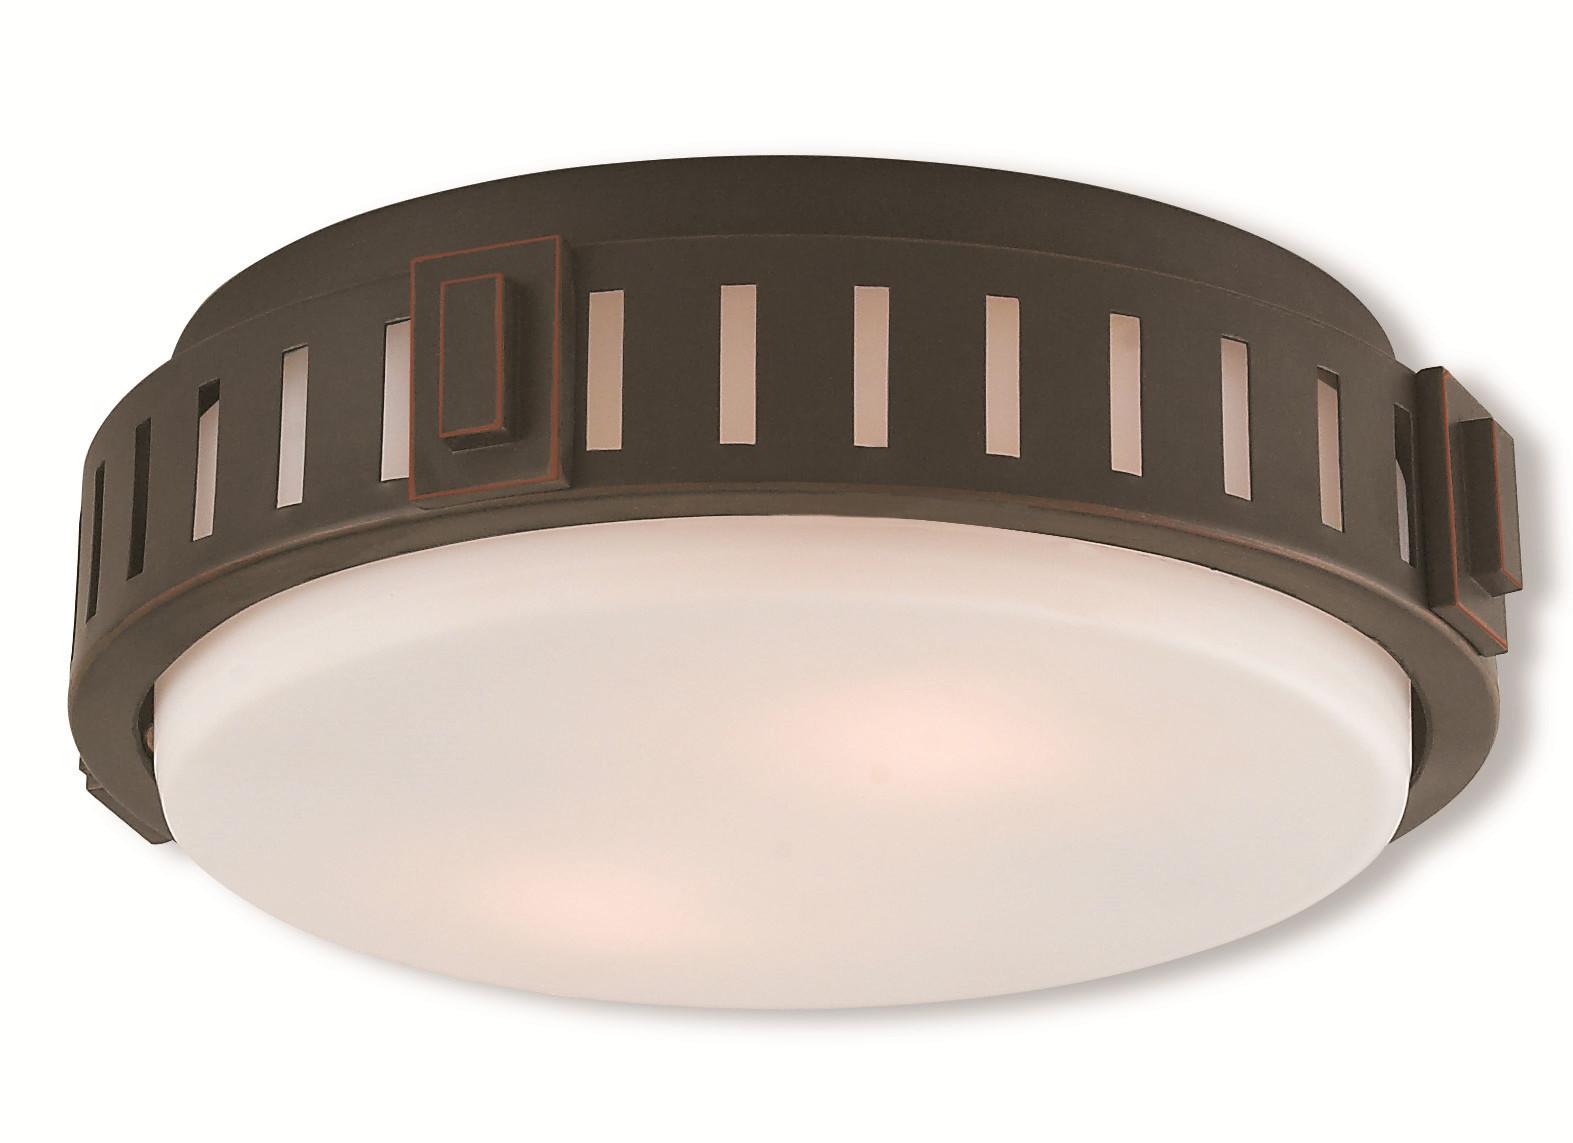 Livex Ceiling Medallion Lighting Portland Bronze